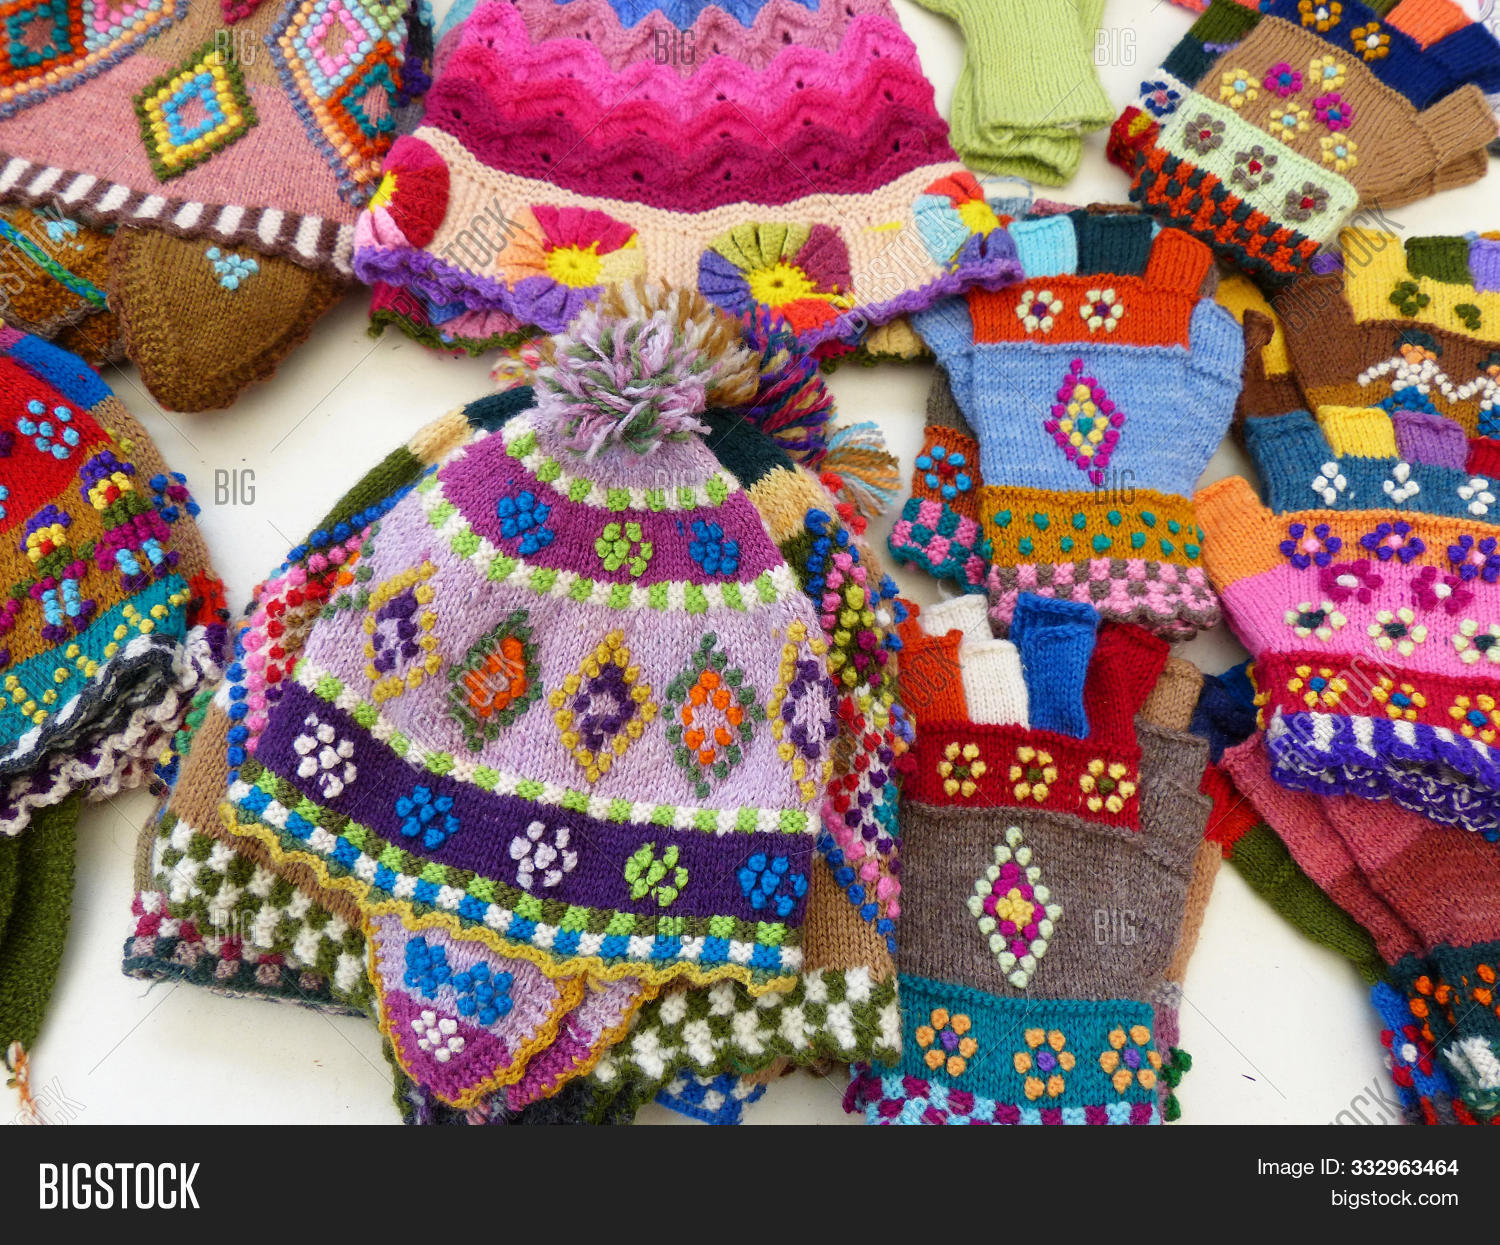 Handcraft Souvenirs From Peru: Colorful Woolen Knitted Hats And Gloves With Tradition Design At The